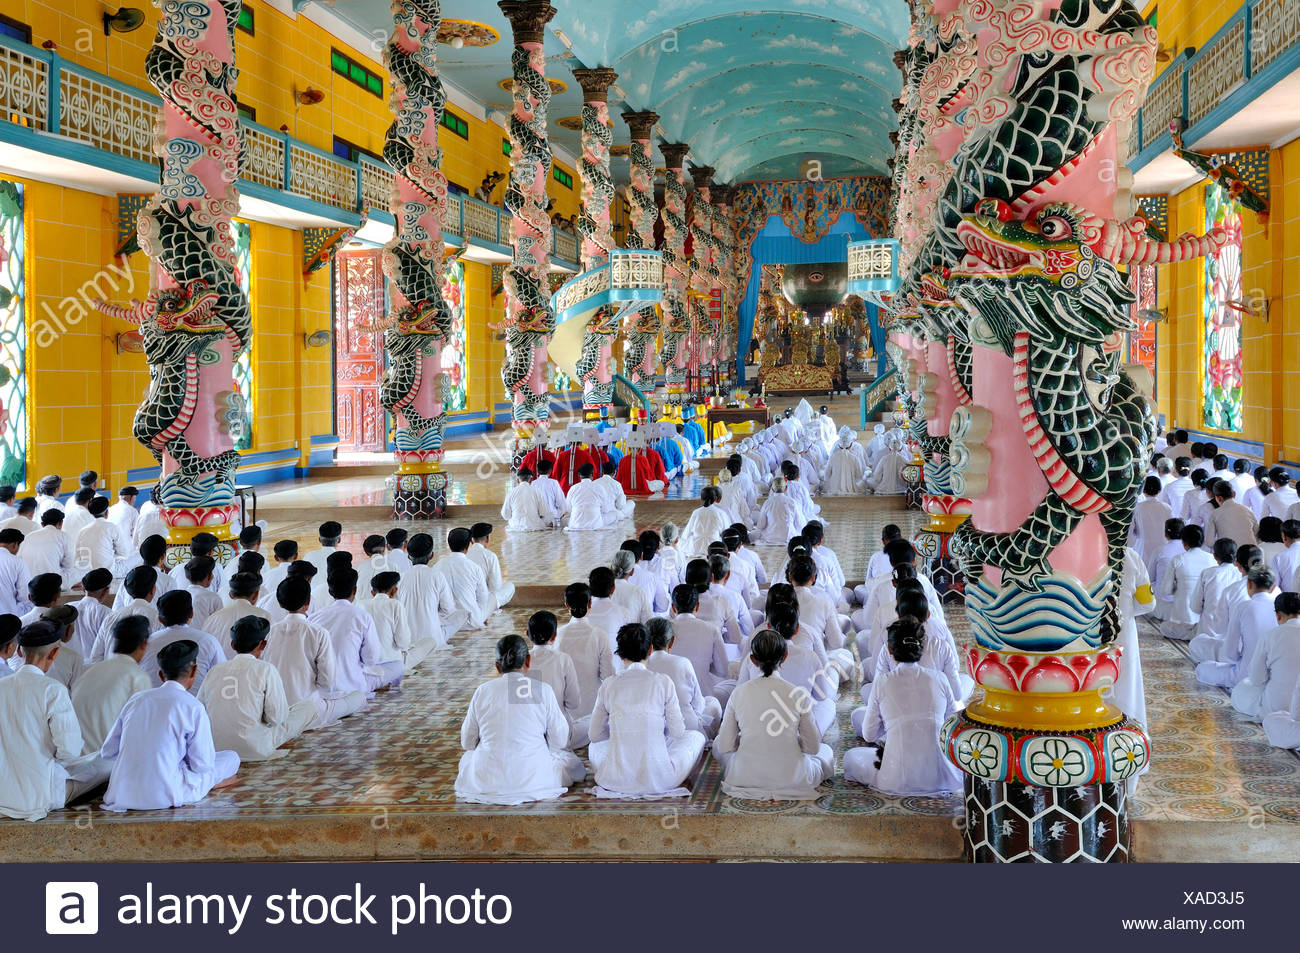 Praying devout men and women, ceremonial midday prayer in the Cao Dai temple, Tay Ninh, Vietnam, Asia - Stock Image